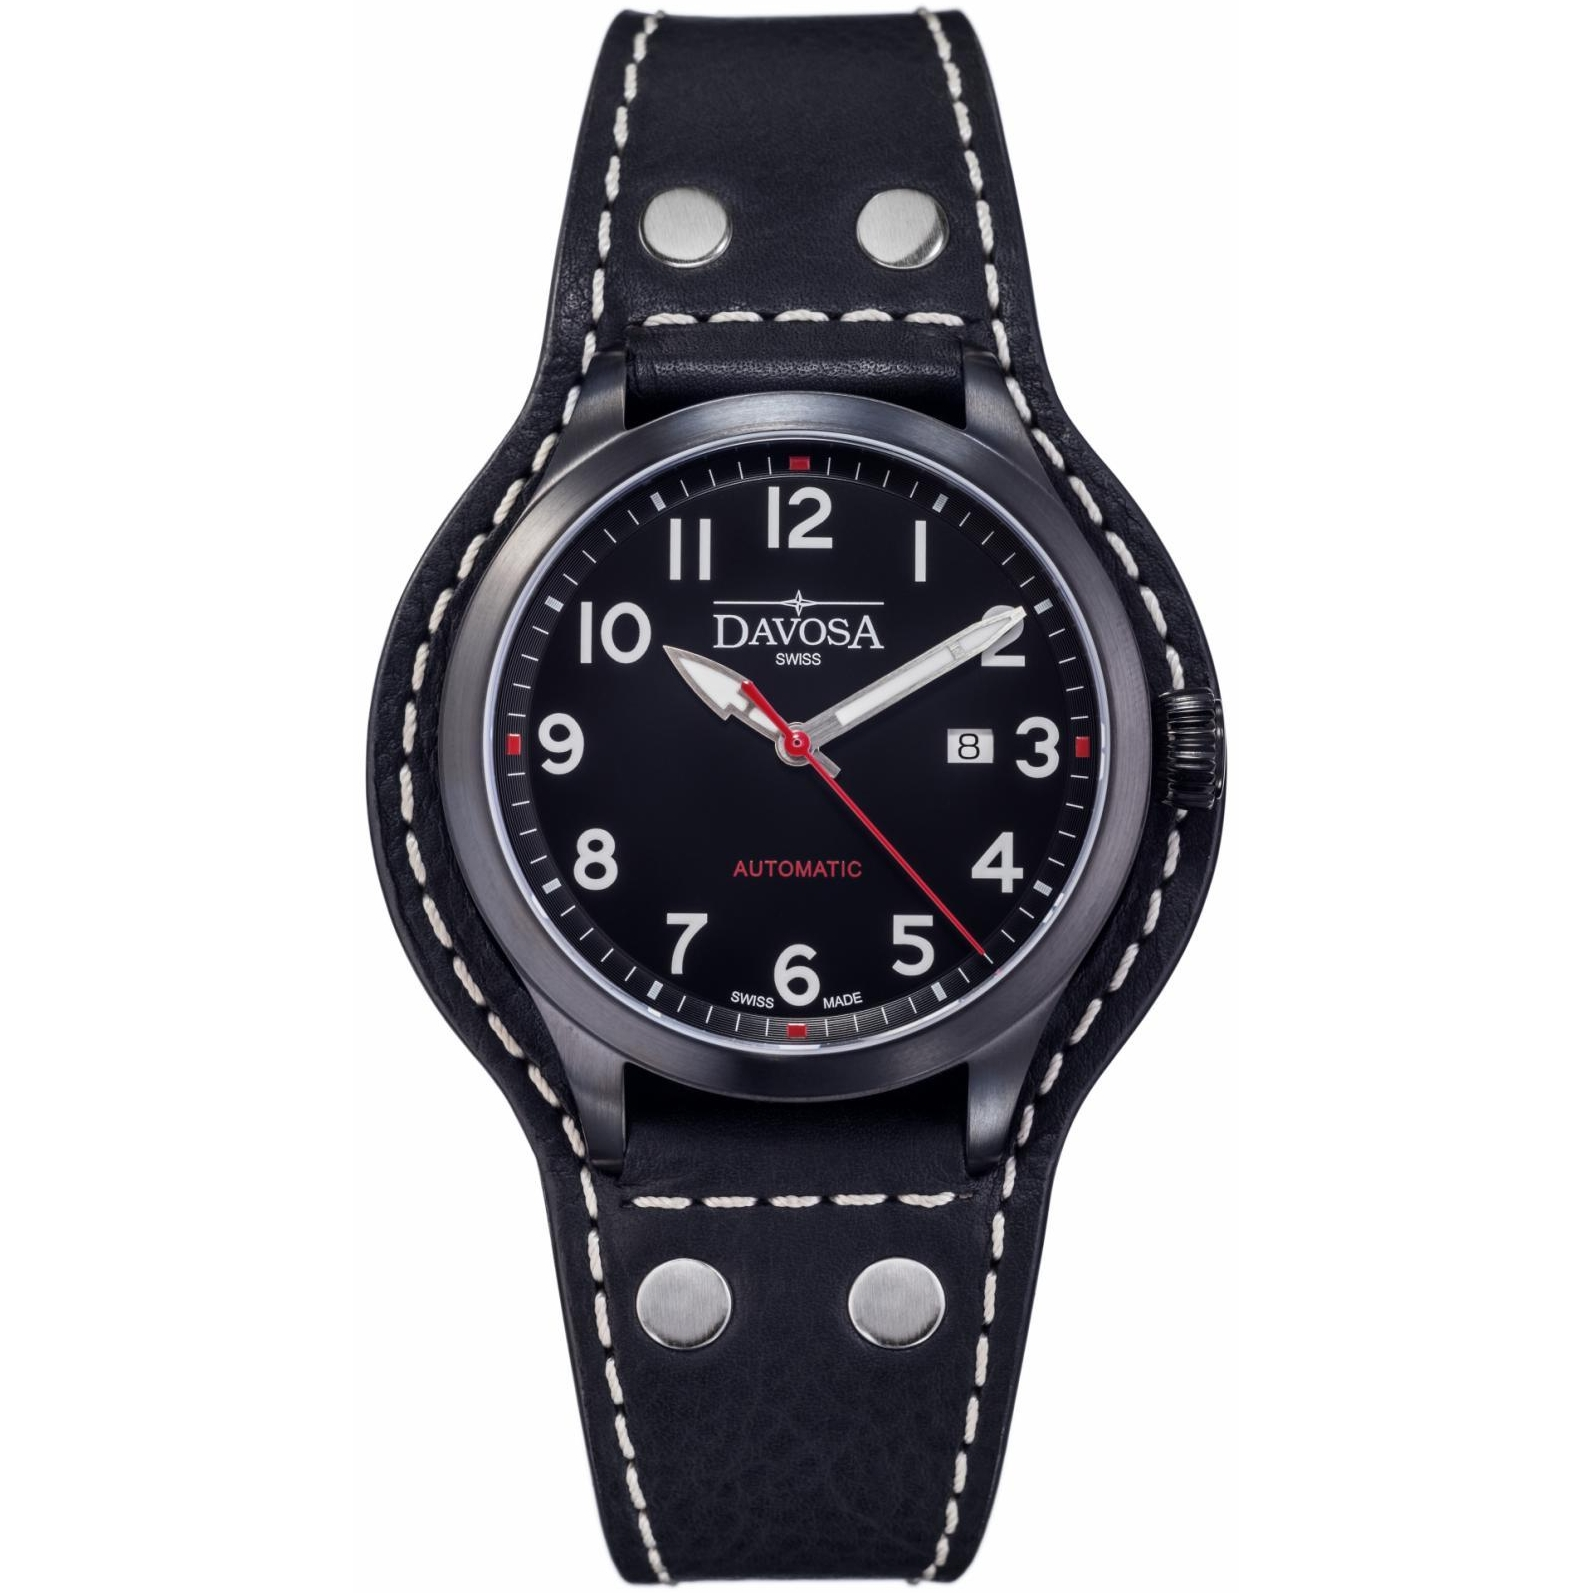 tudor watches scale shop editor dark pvd bay jewellery heritage watch black the subsampling upscale crop product false